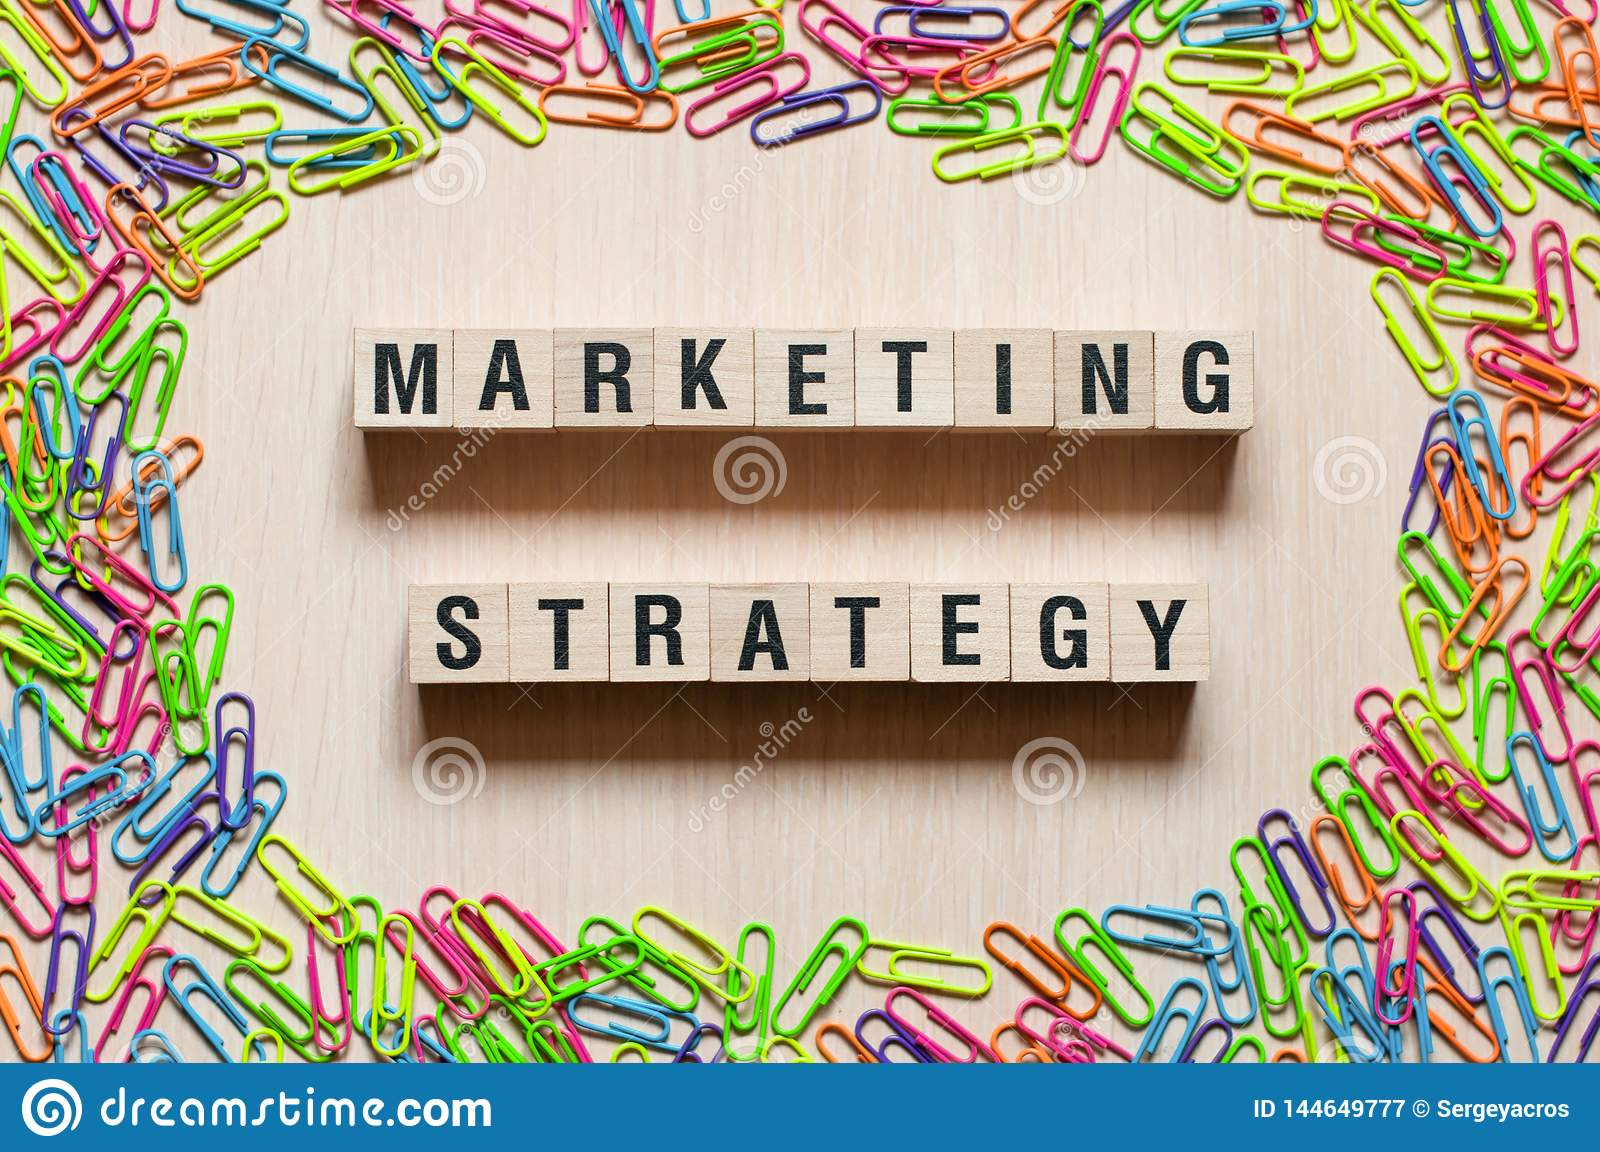 Marketing strategy words concept